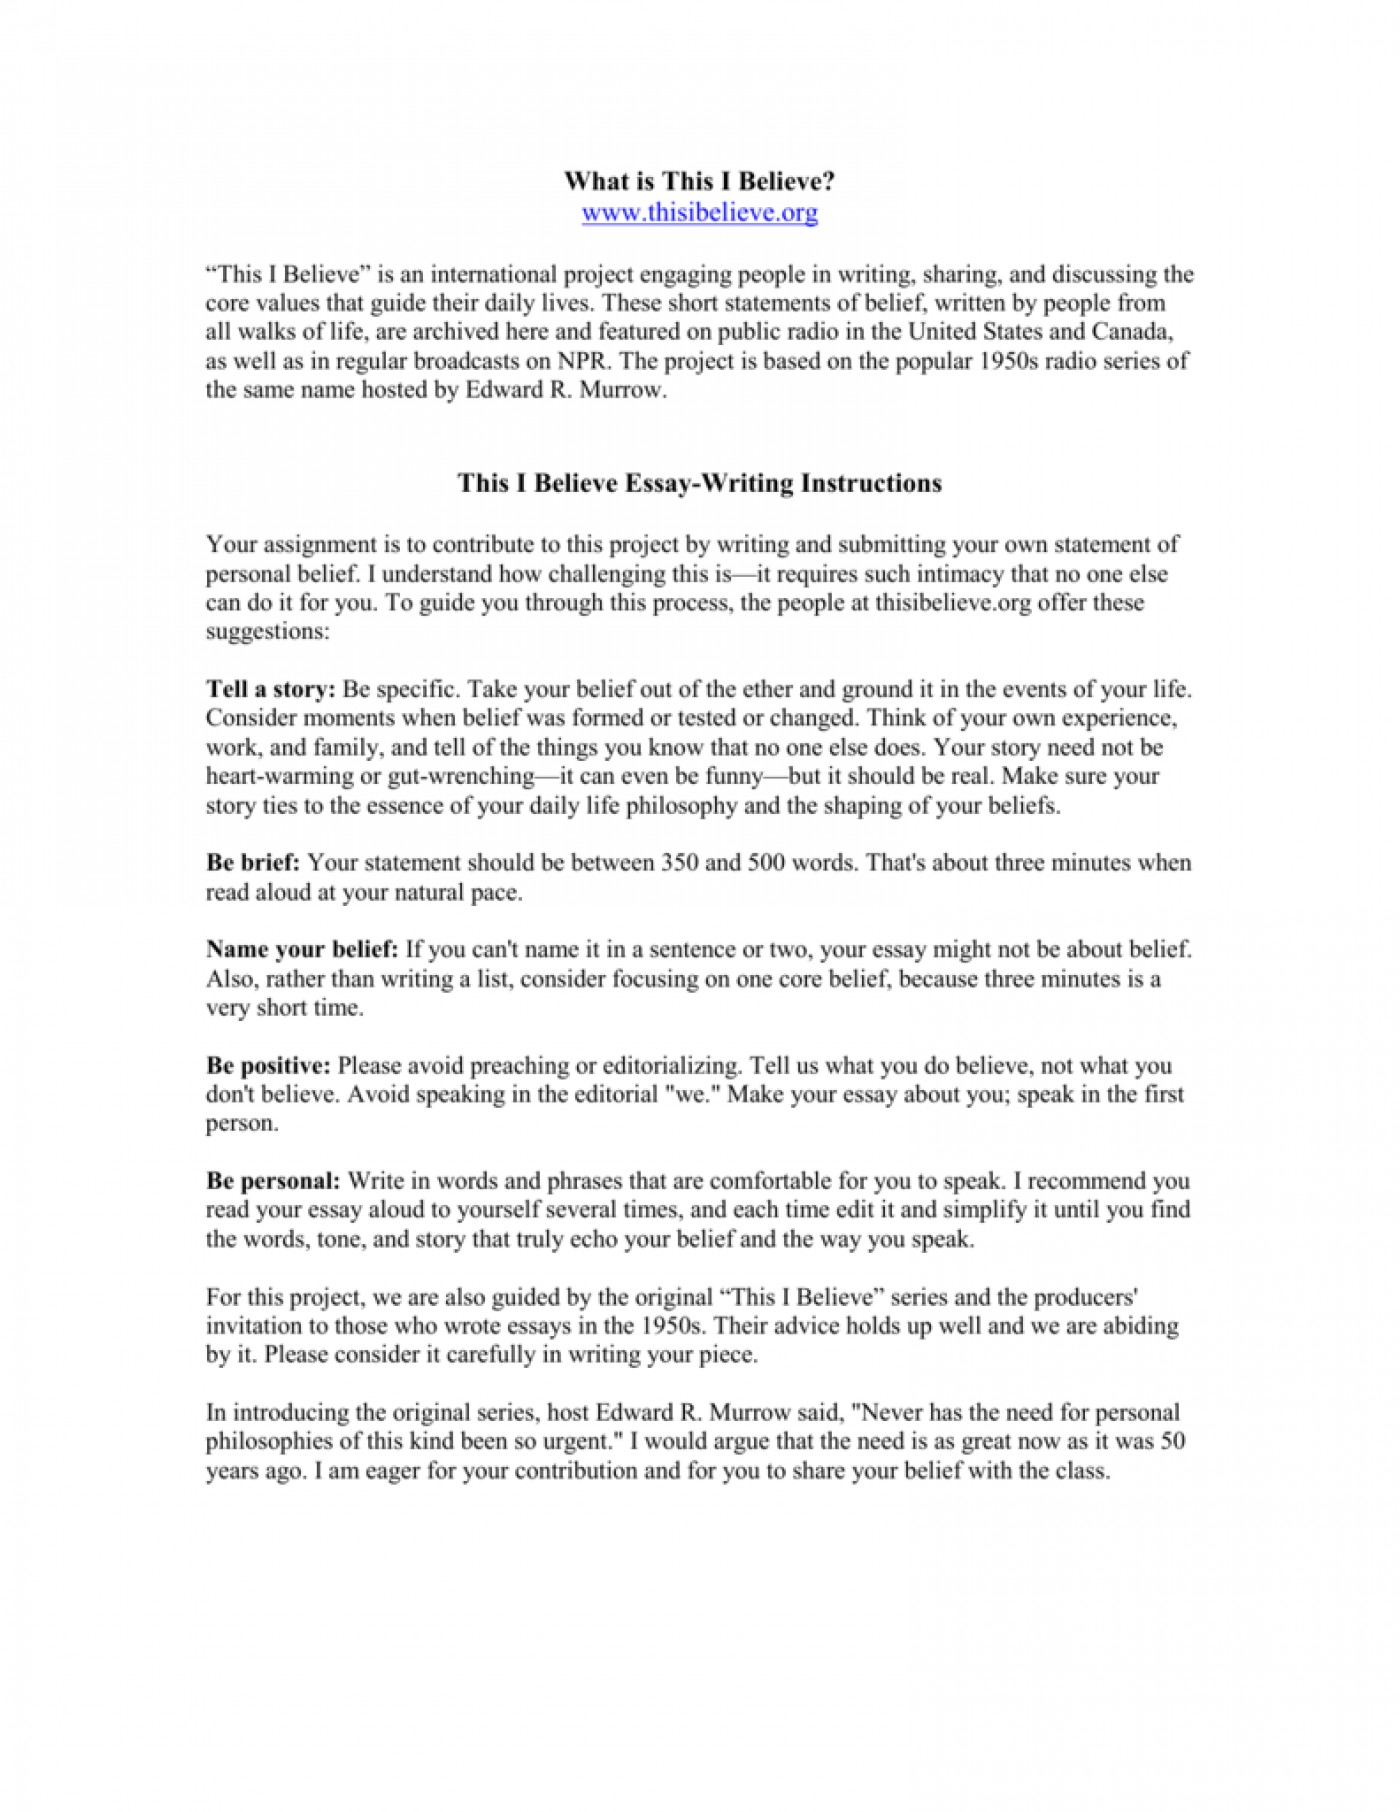 009 Essay Example How To Write This I Believe 008807226 1 Fantastic A Things On What 1400